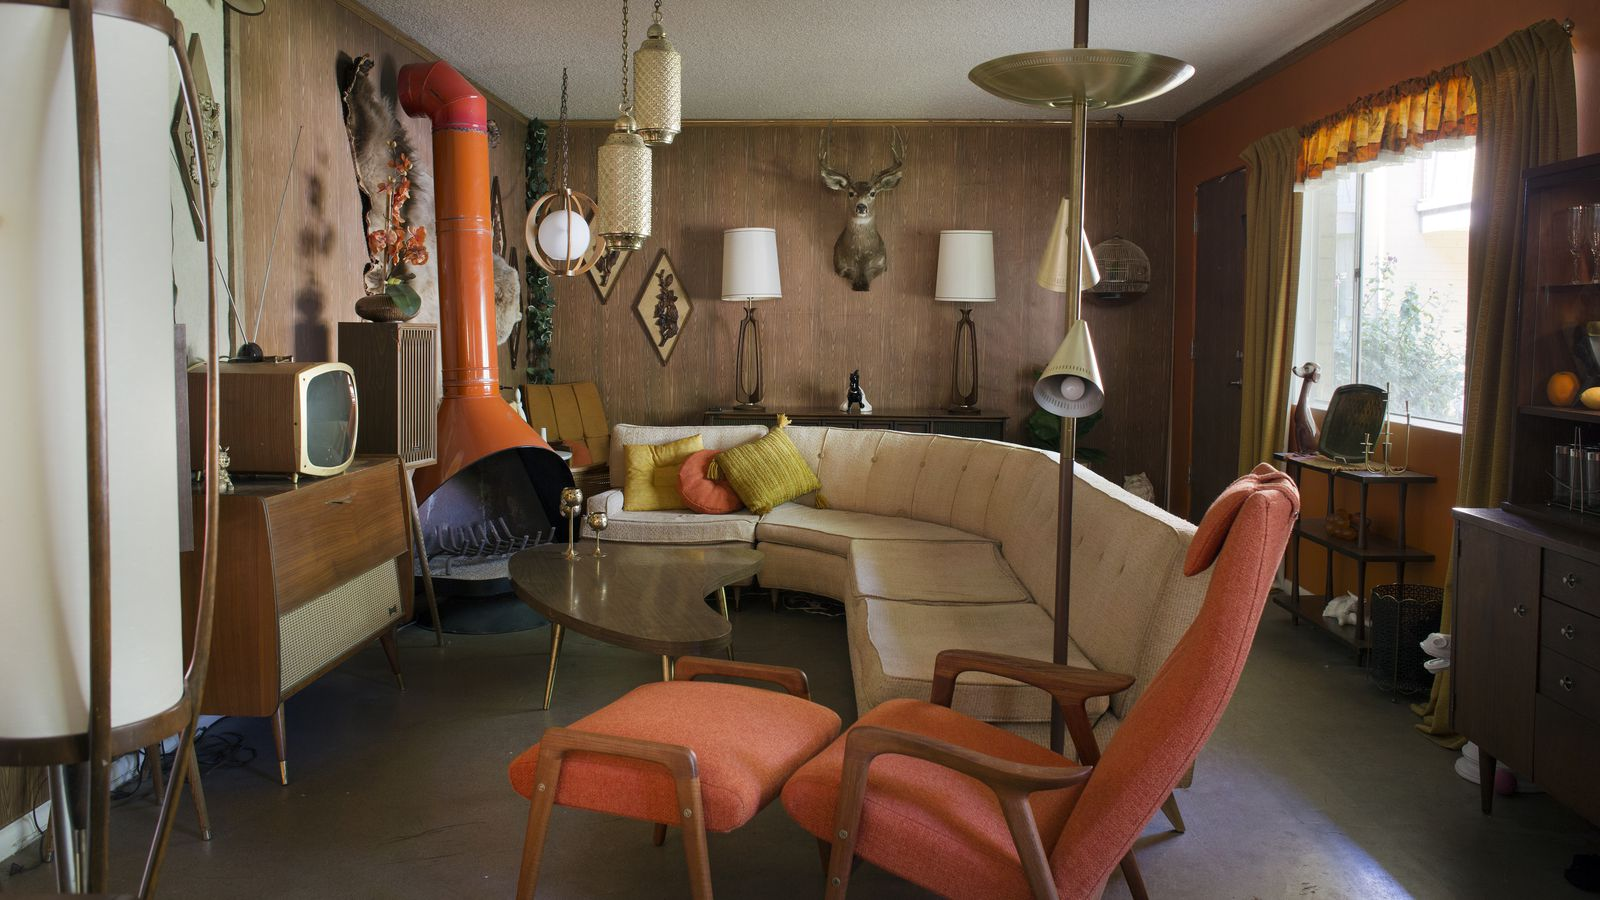 A Millennial in Love With Midcentury Modernism Creates Time Capsule Bachelor Pad  Curbed